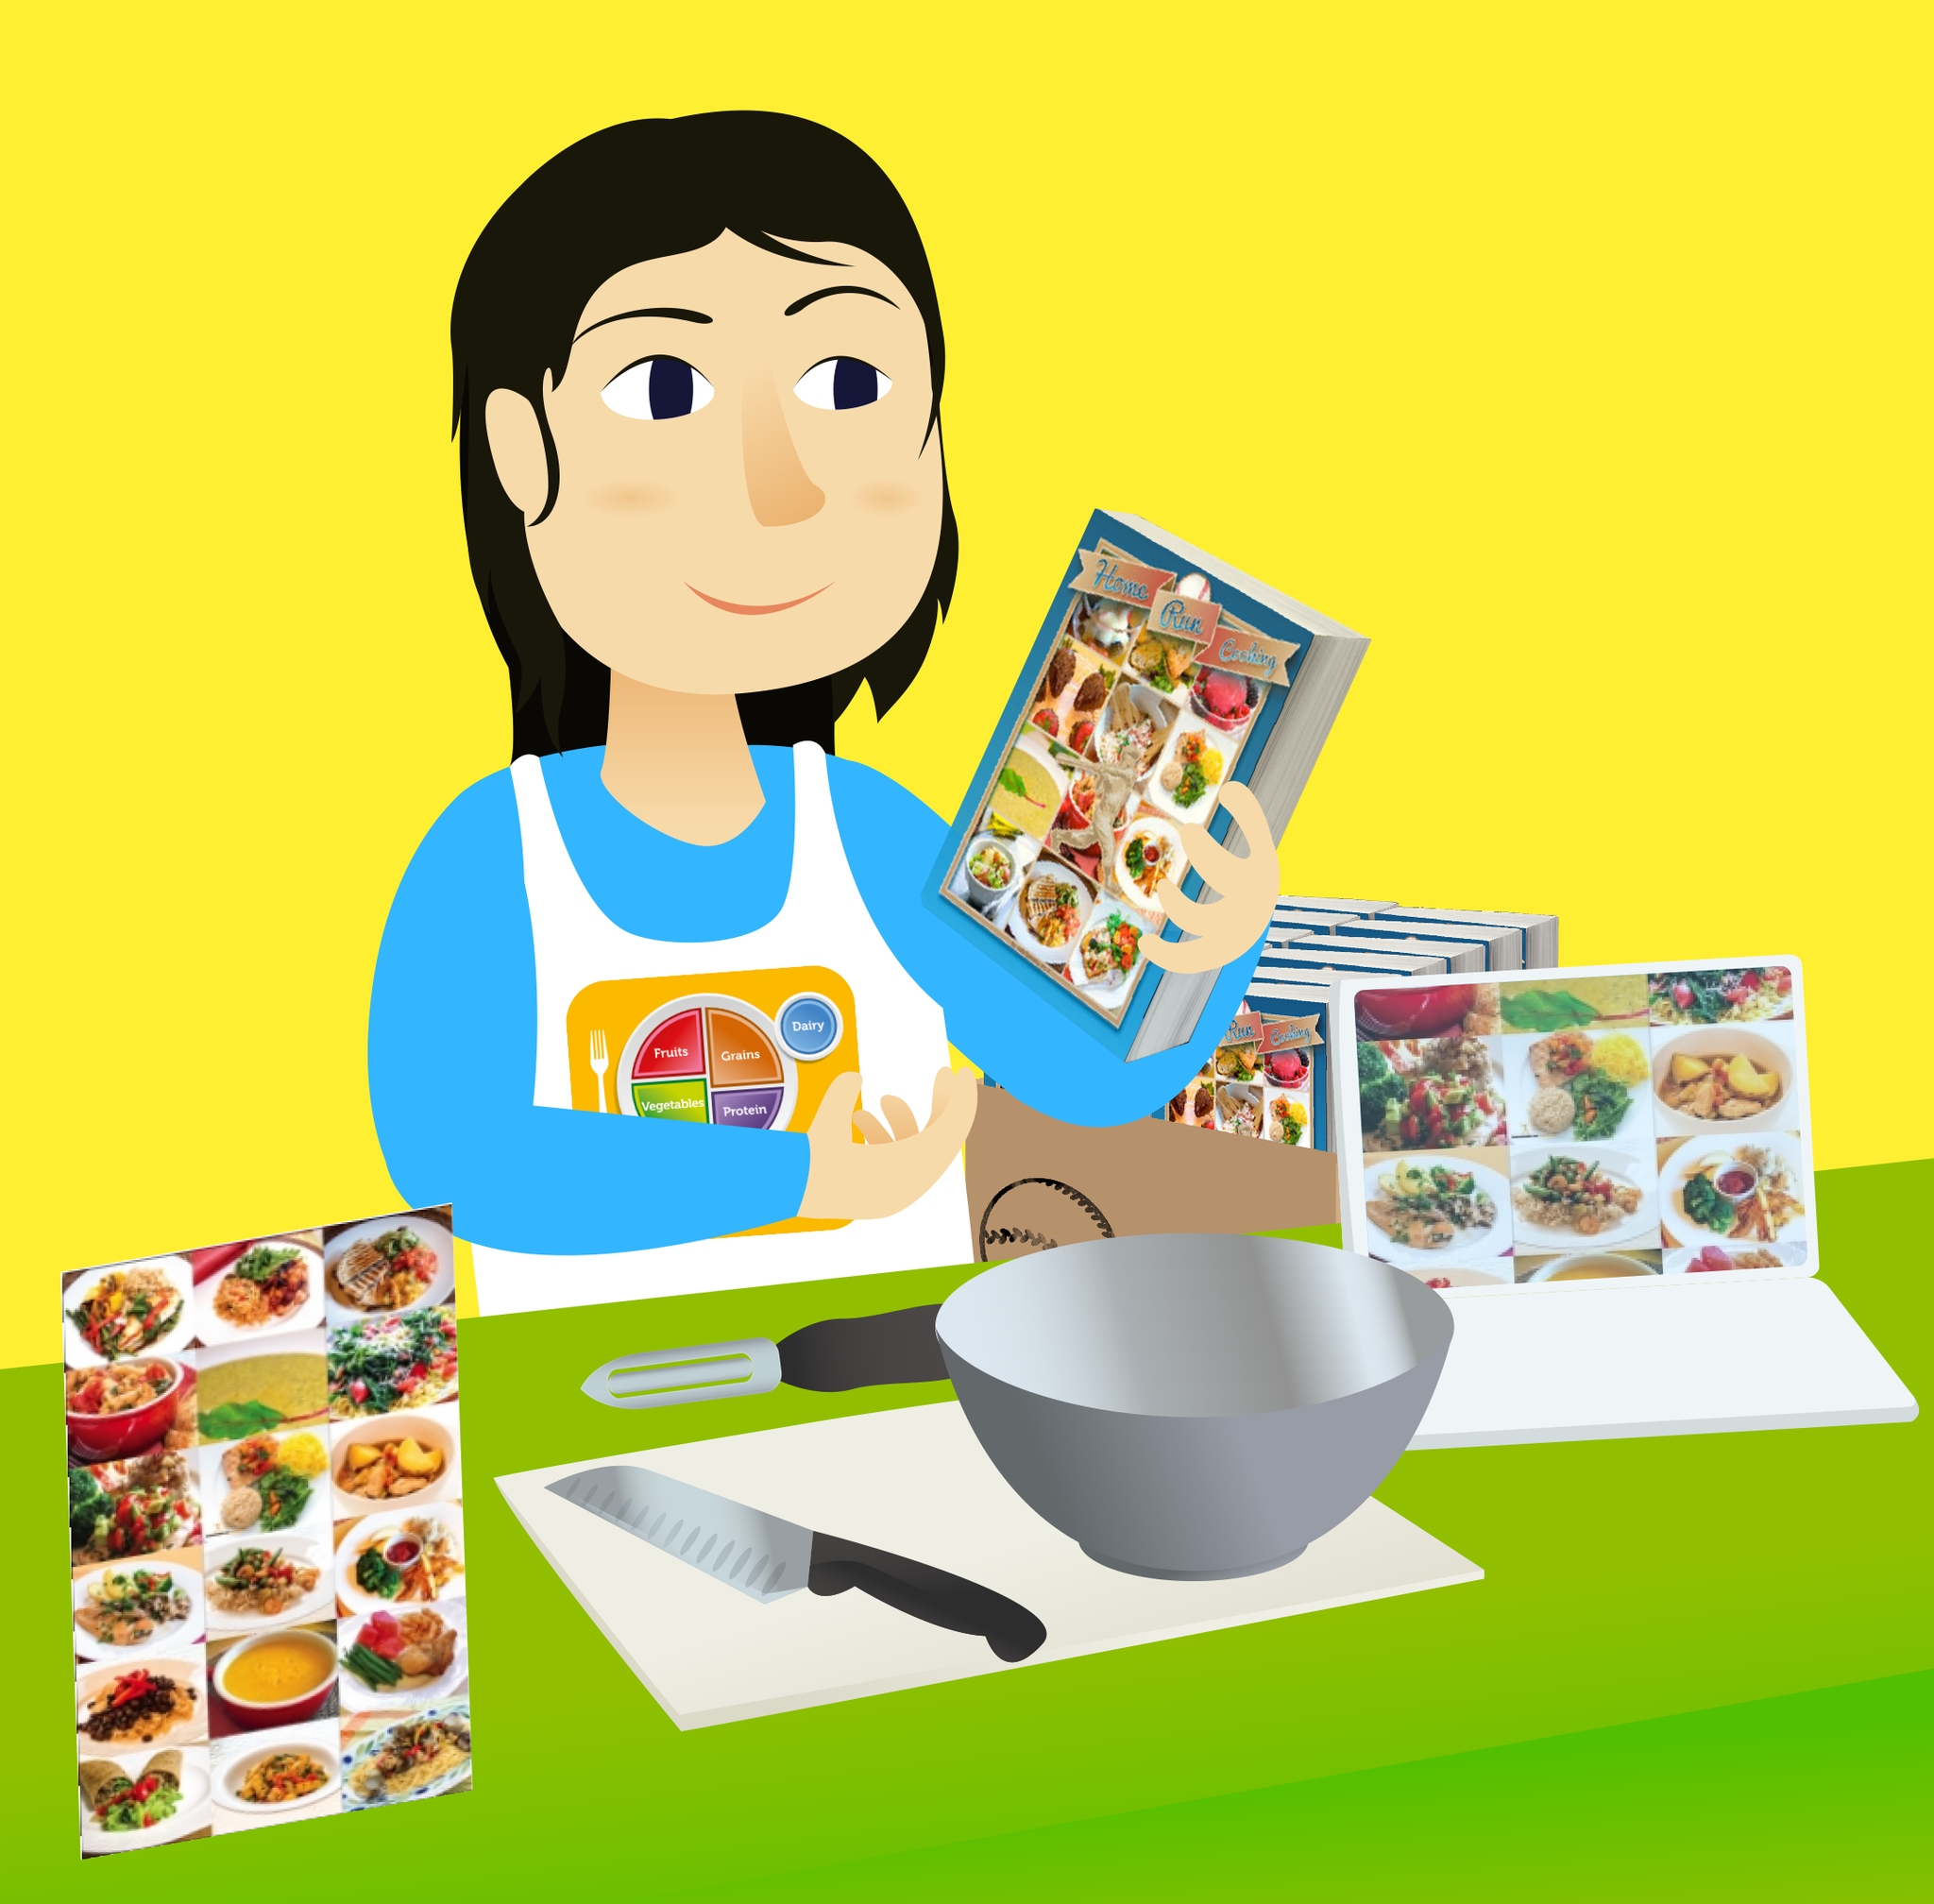 Cooking Demo Display Kit - Nutrition Education Store